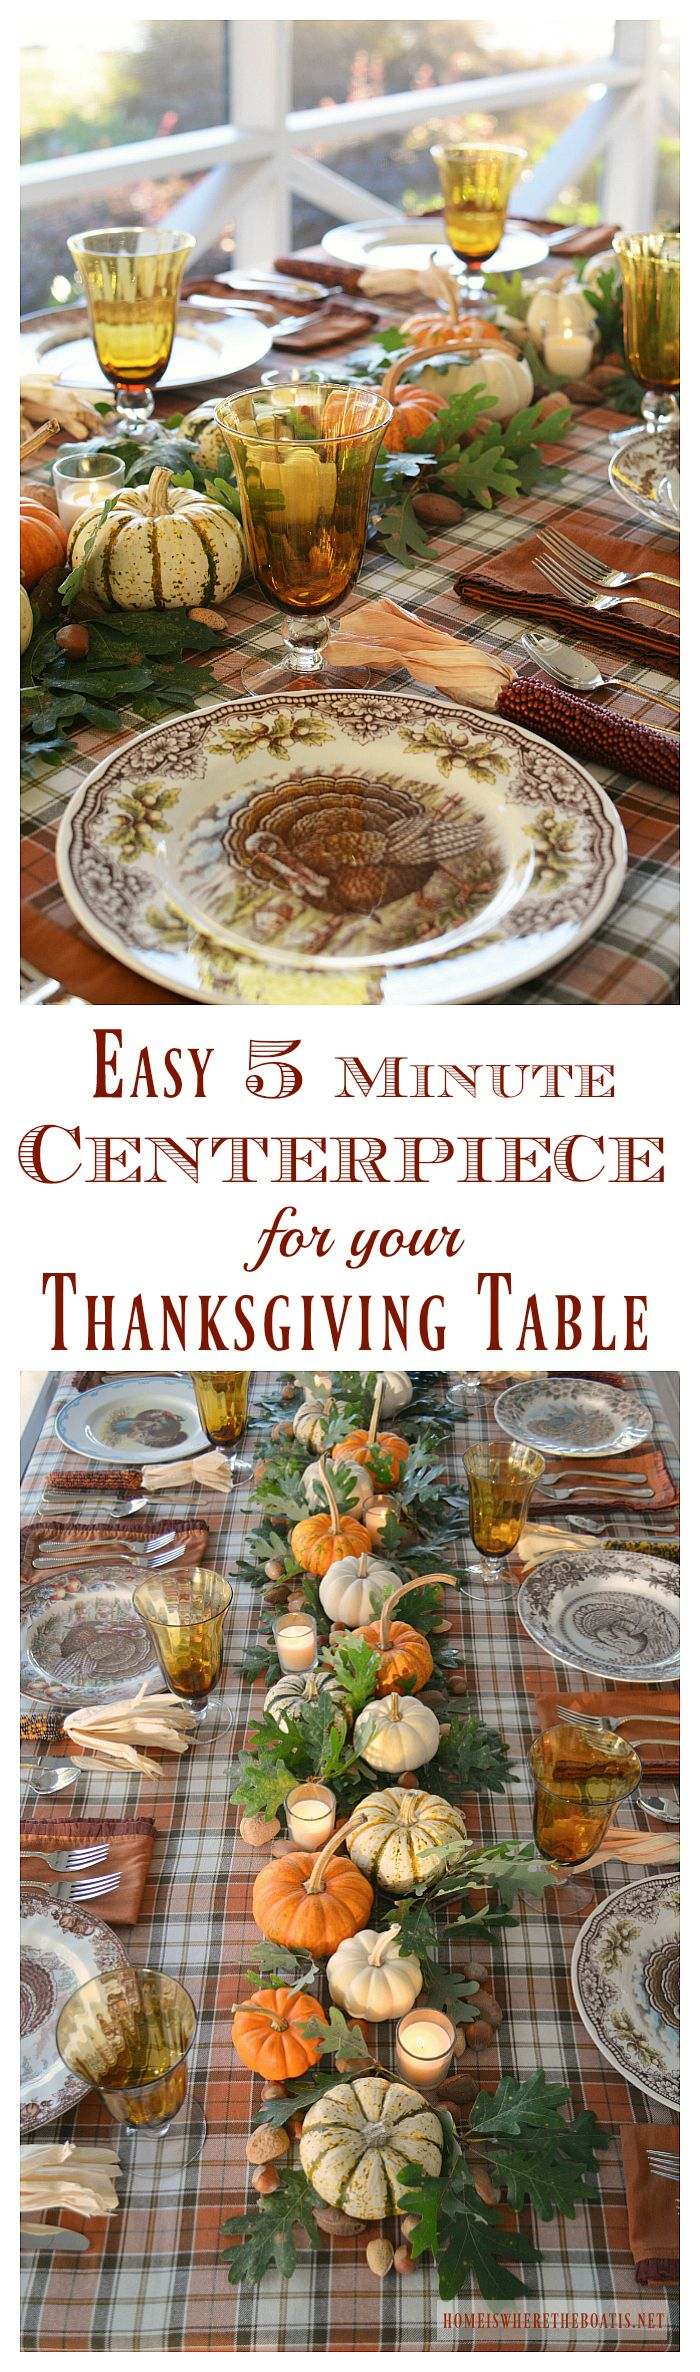 Create a natural centerpiece for your Thanksgiving table in 5 minutes! | homeiswheretheboatis.net  OMGEEE! I love the setting with all the different turkey plates!!!